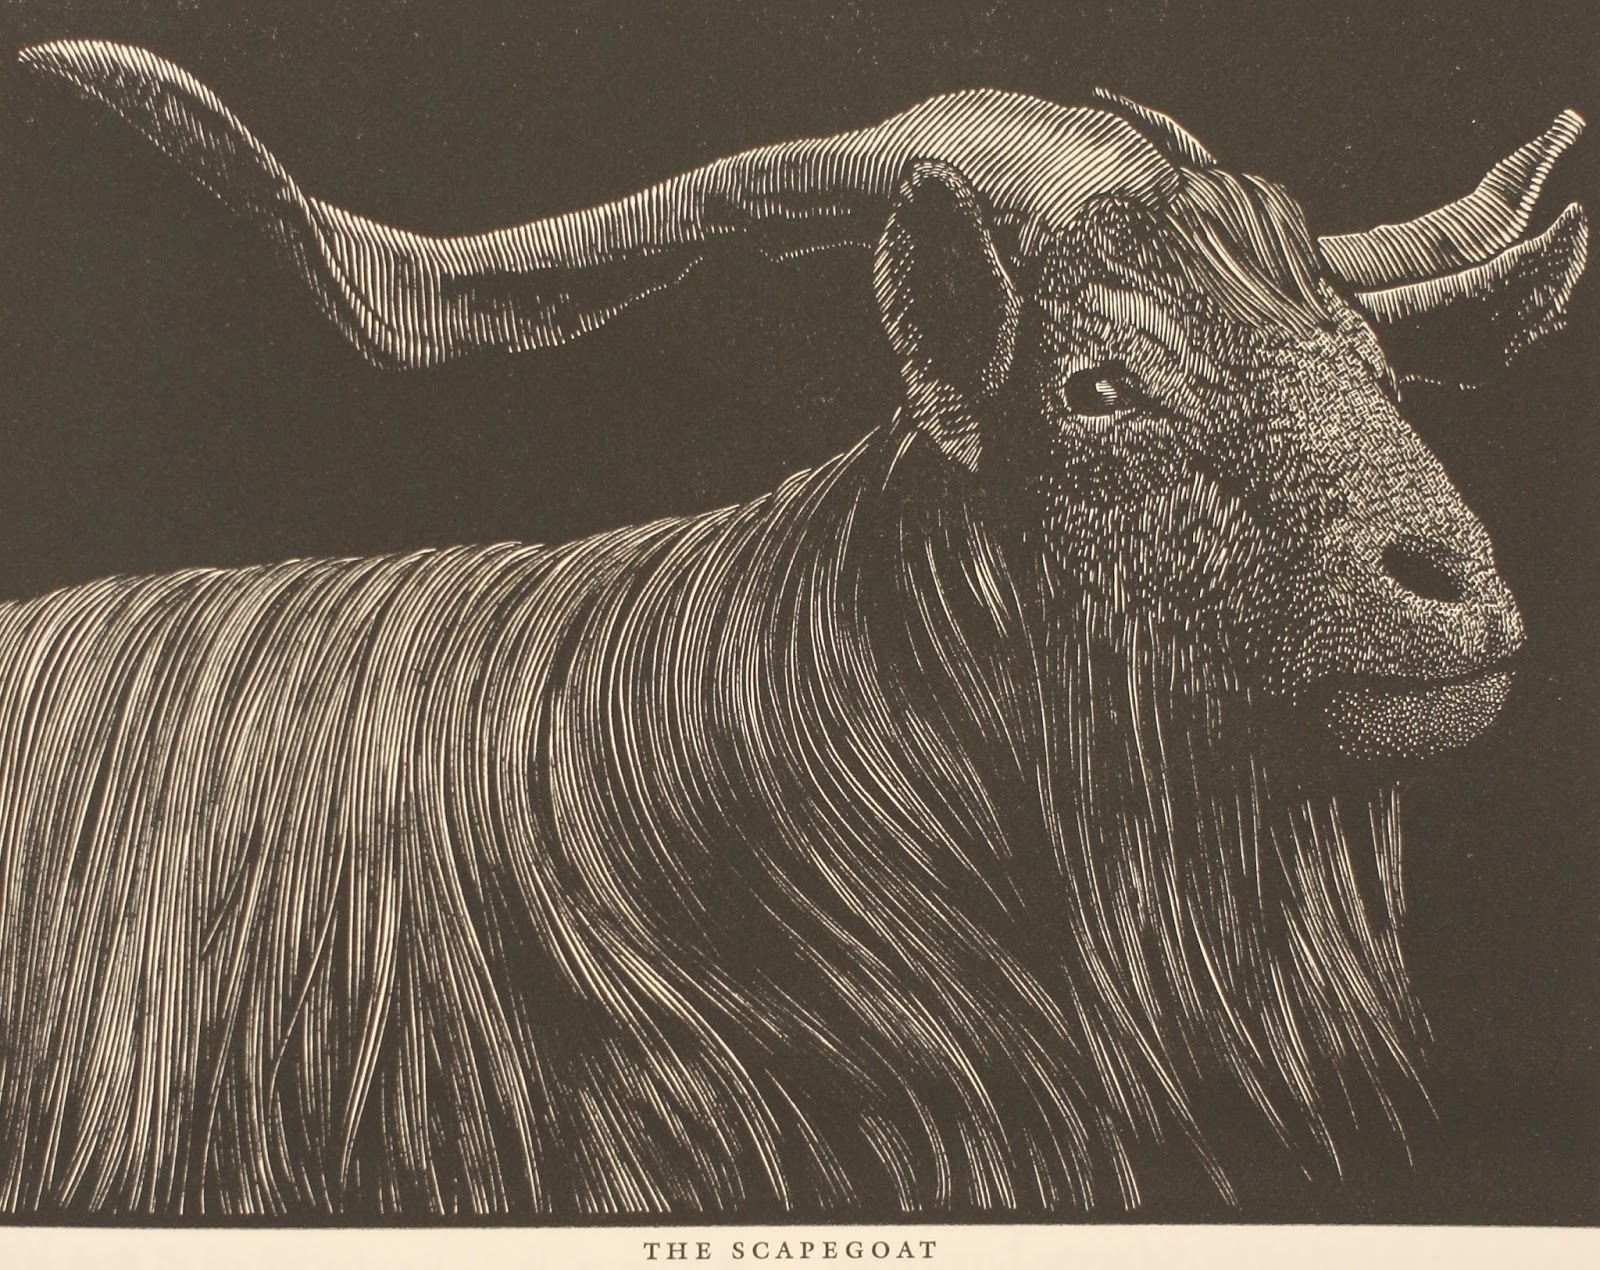 SCAPEGOAT IN THE BIBLE - King James Version